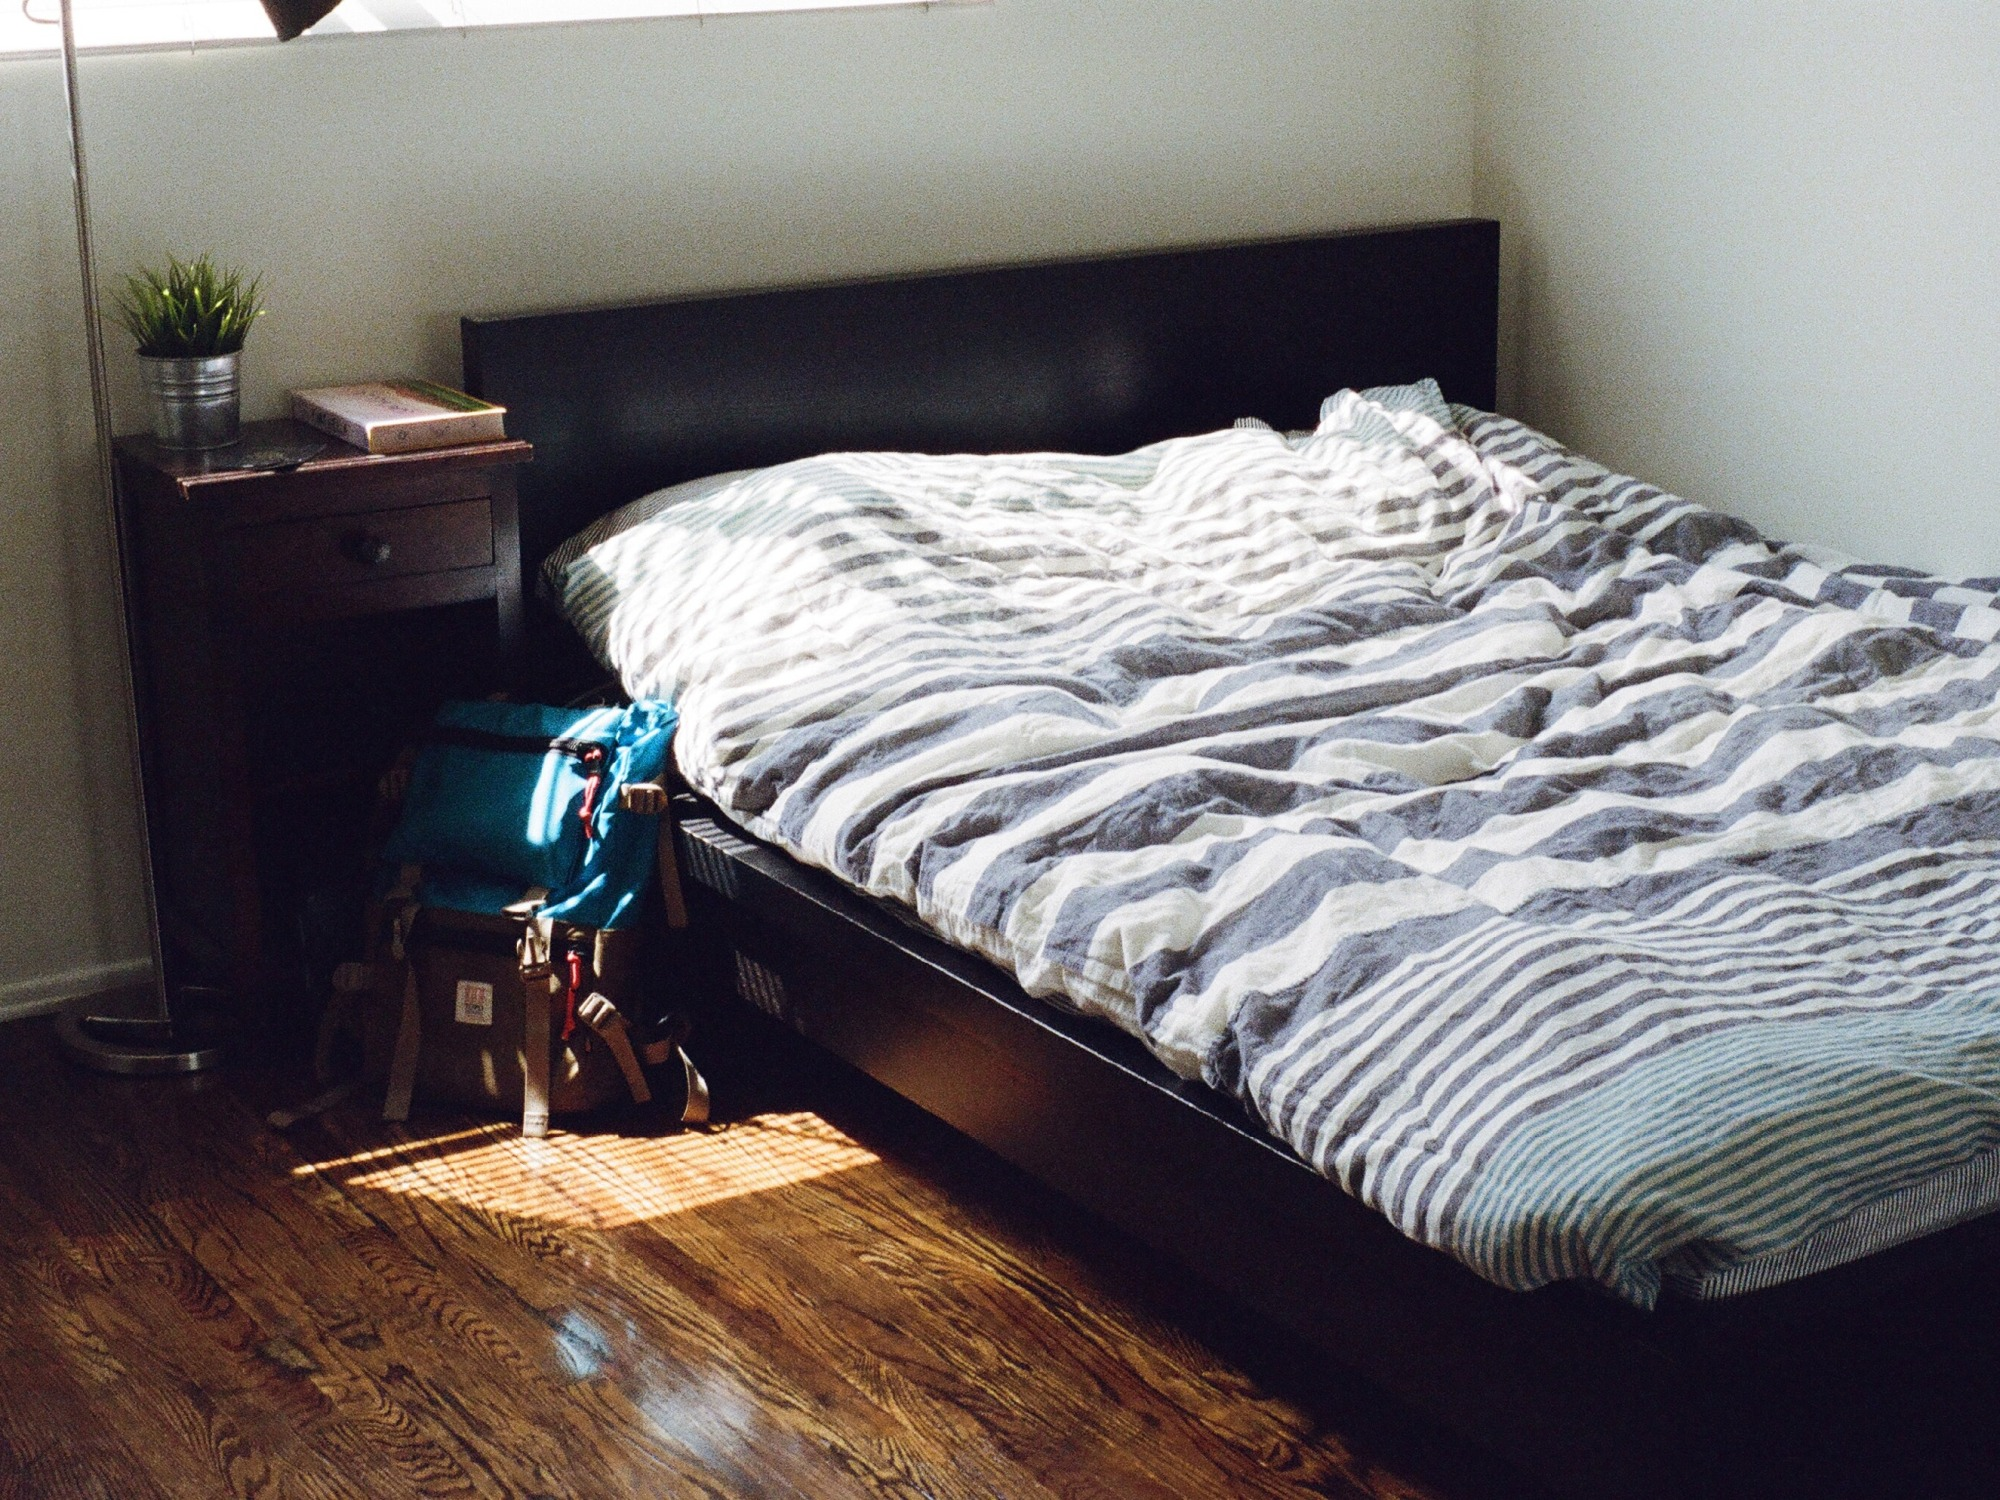 A bed and bedside table